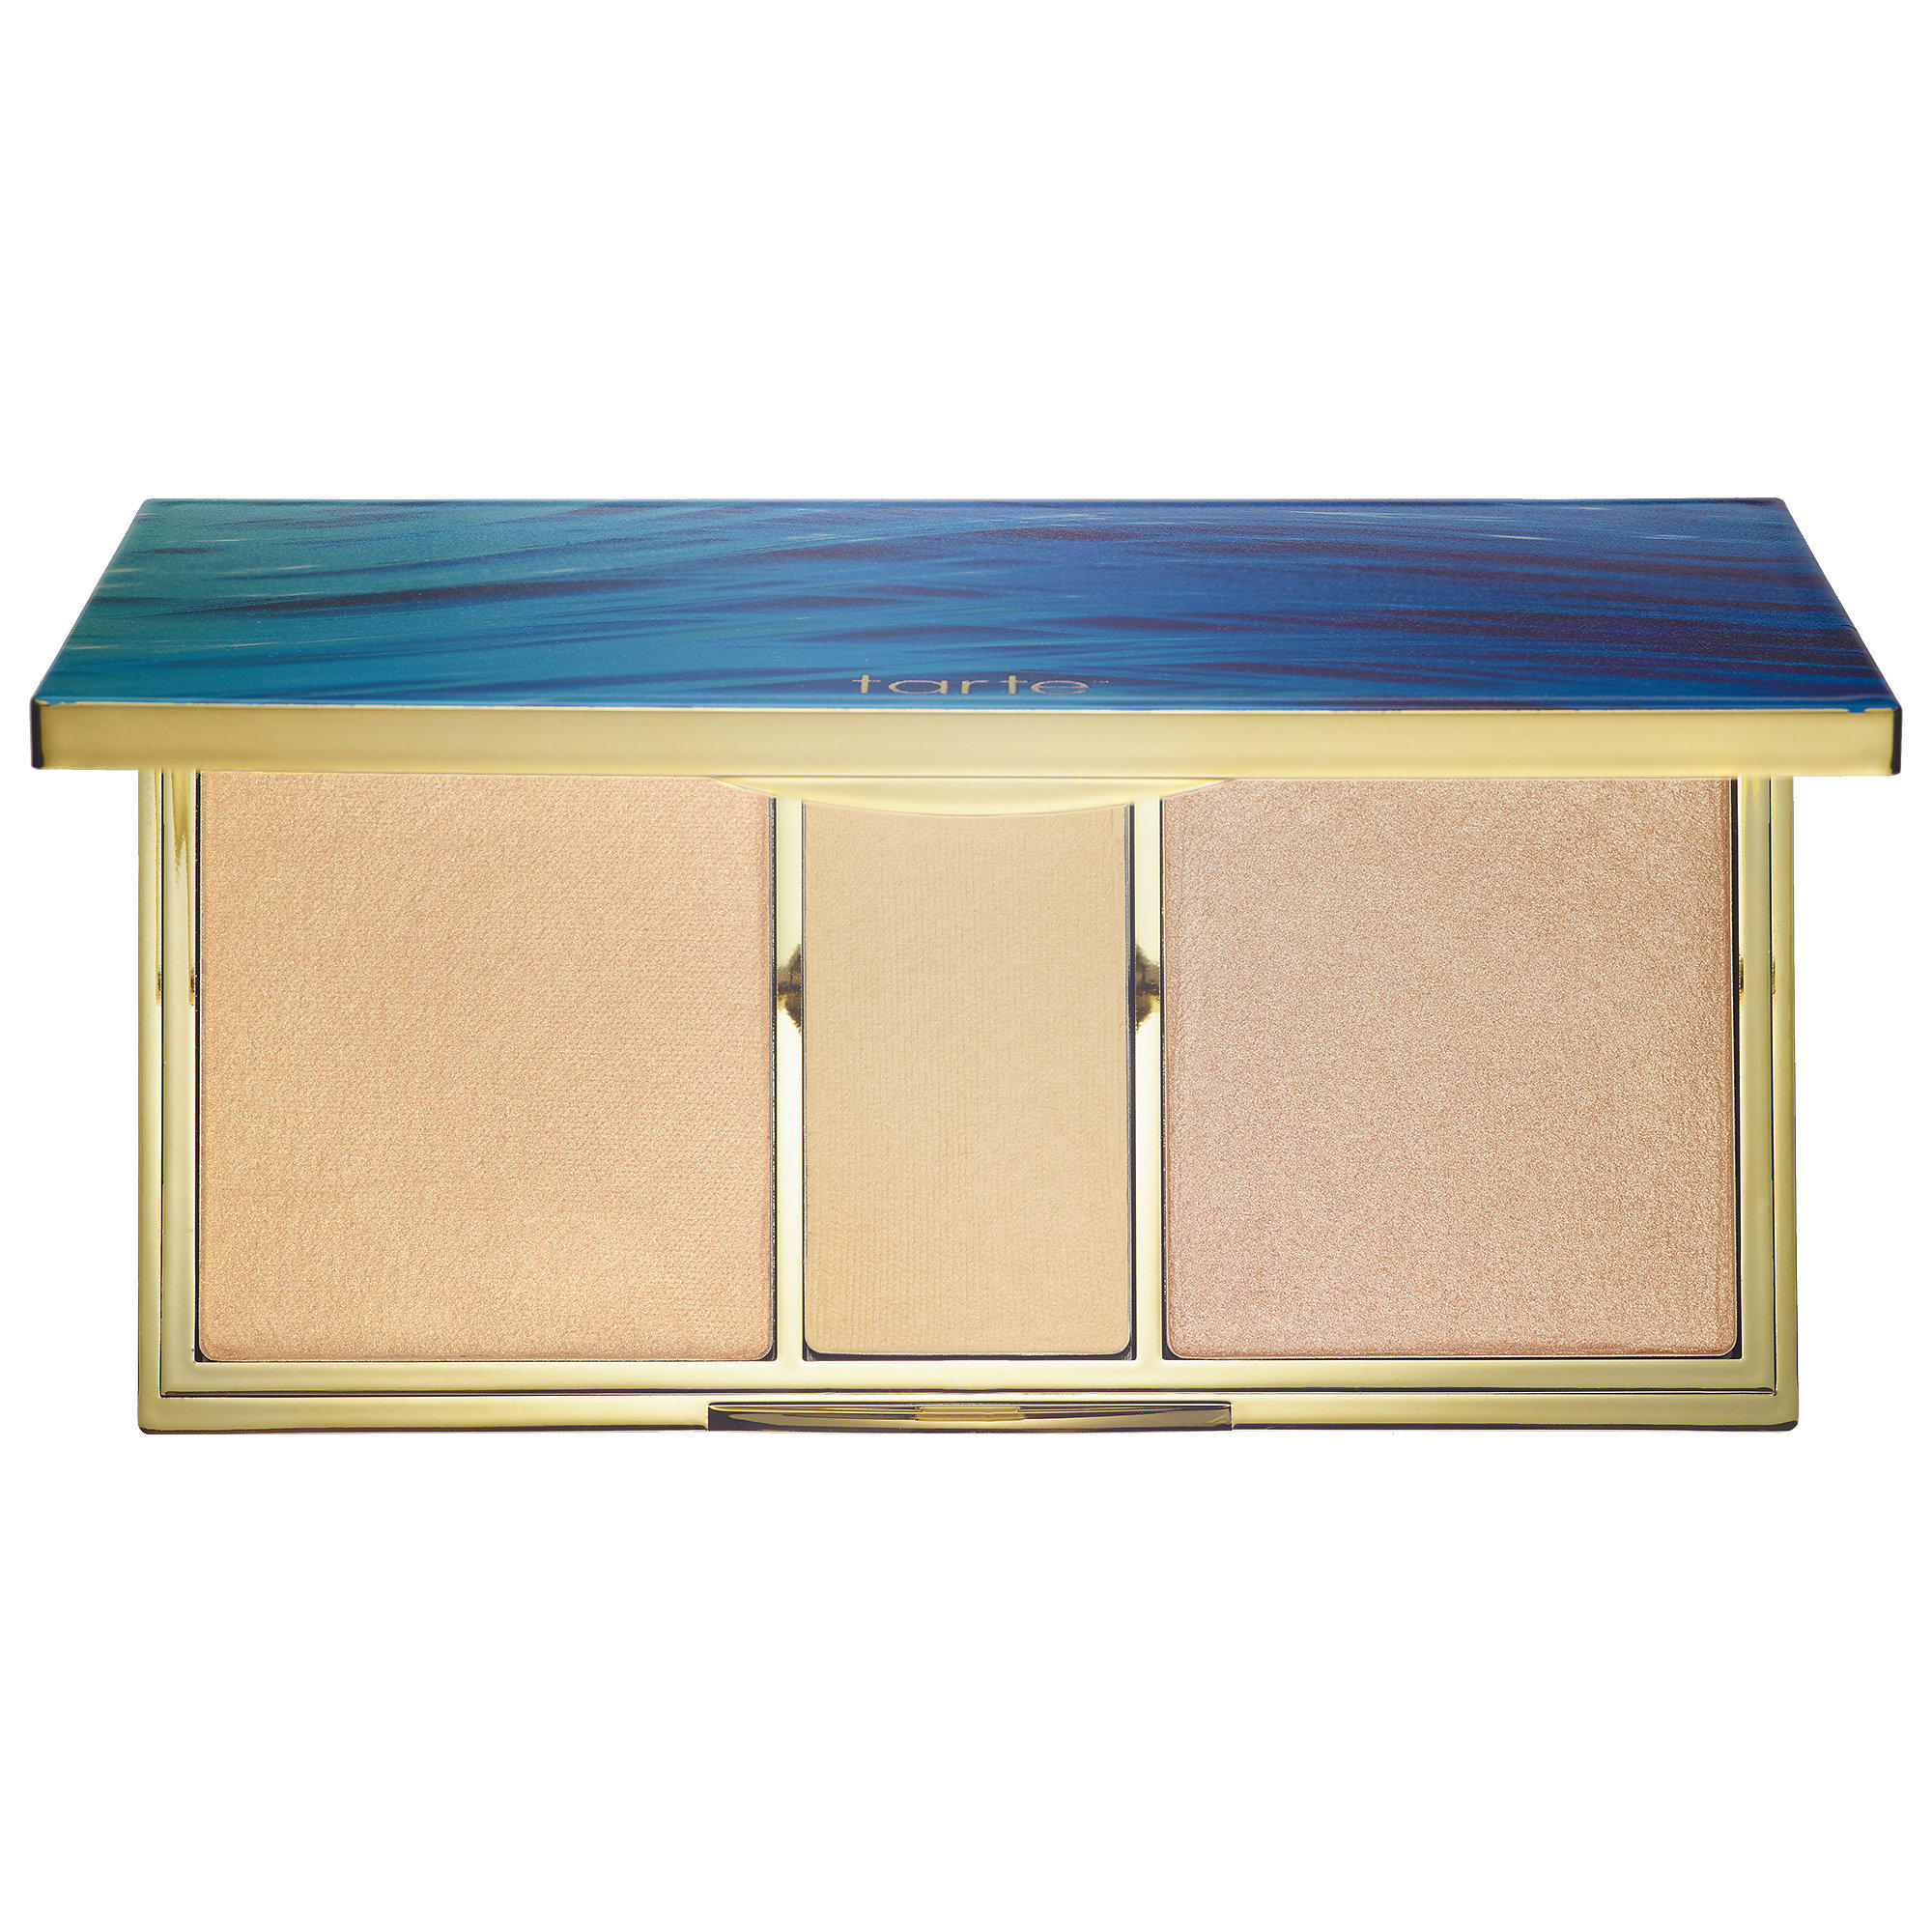 Tarte Lighting Palette Skin Twinkle